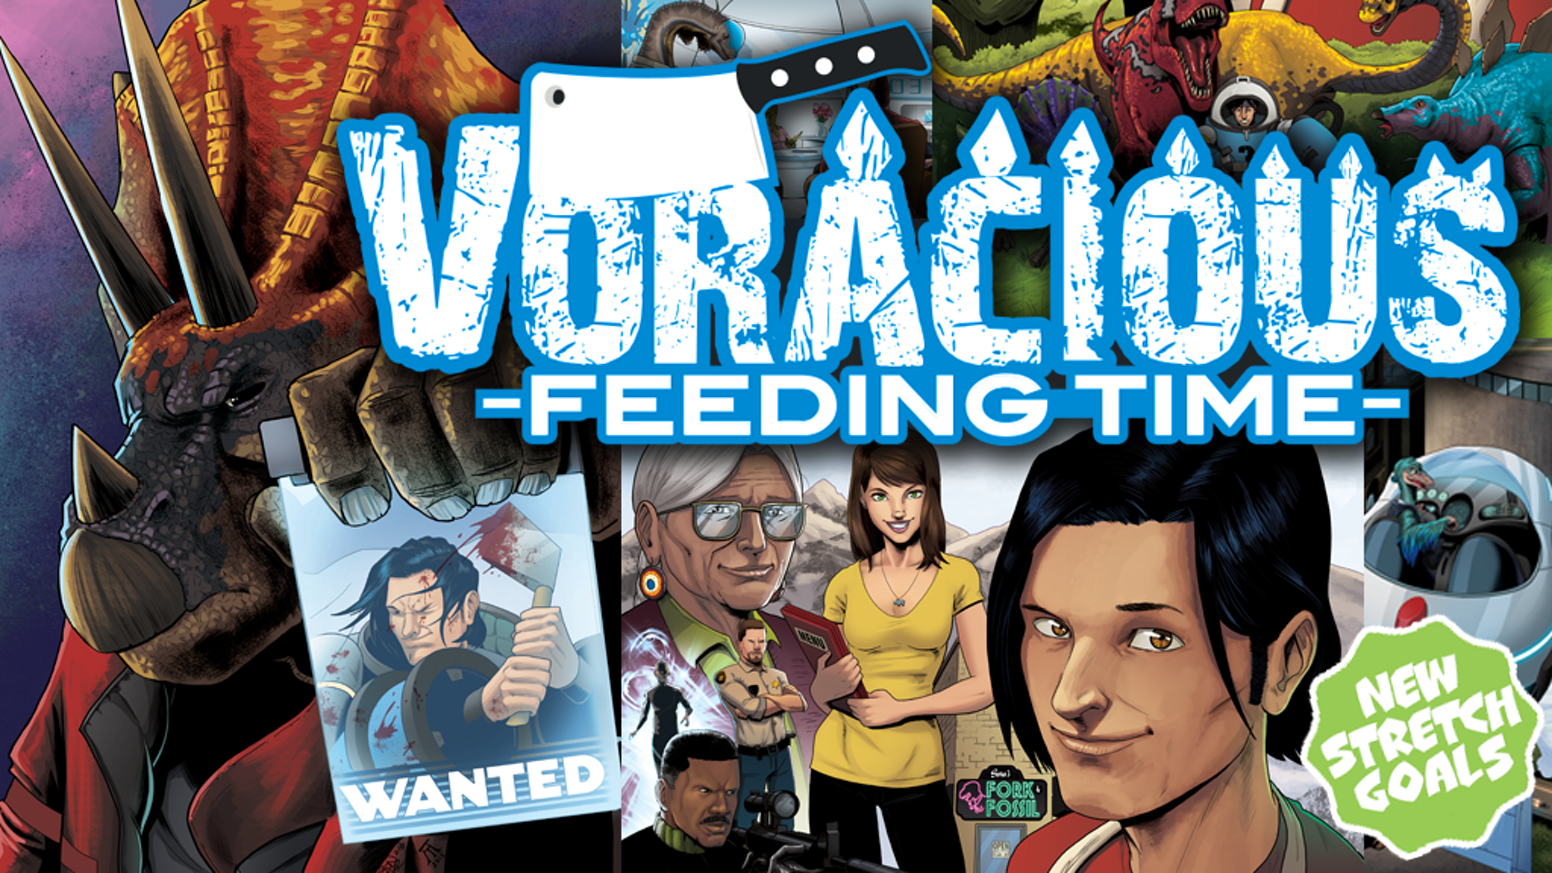 A 5-issue series that continues the critically acclaimed VORACIOUS story published by Action Lab Comics! Top Chef Meets Jurassic World!